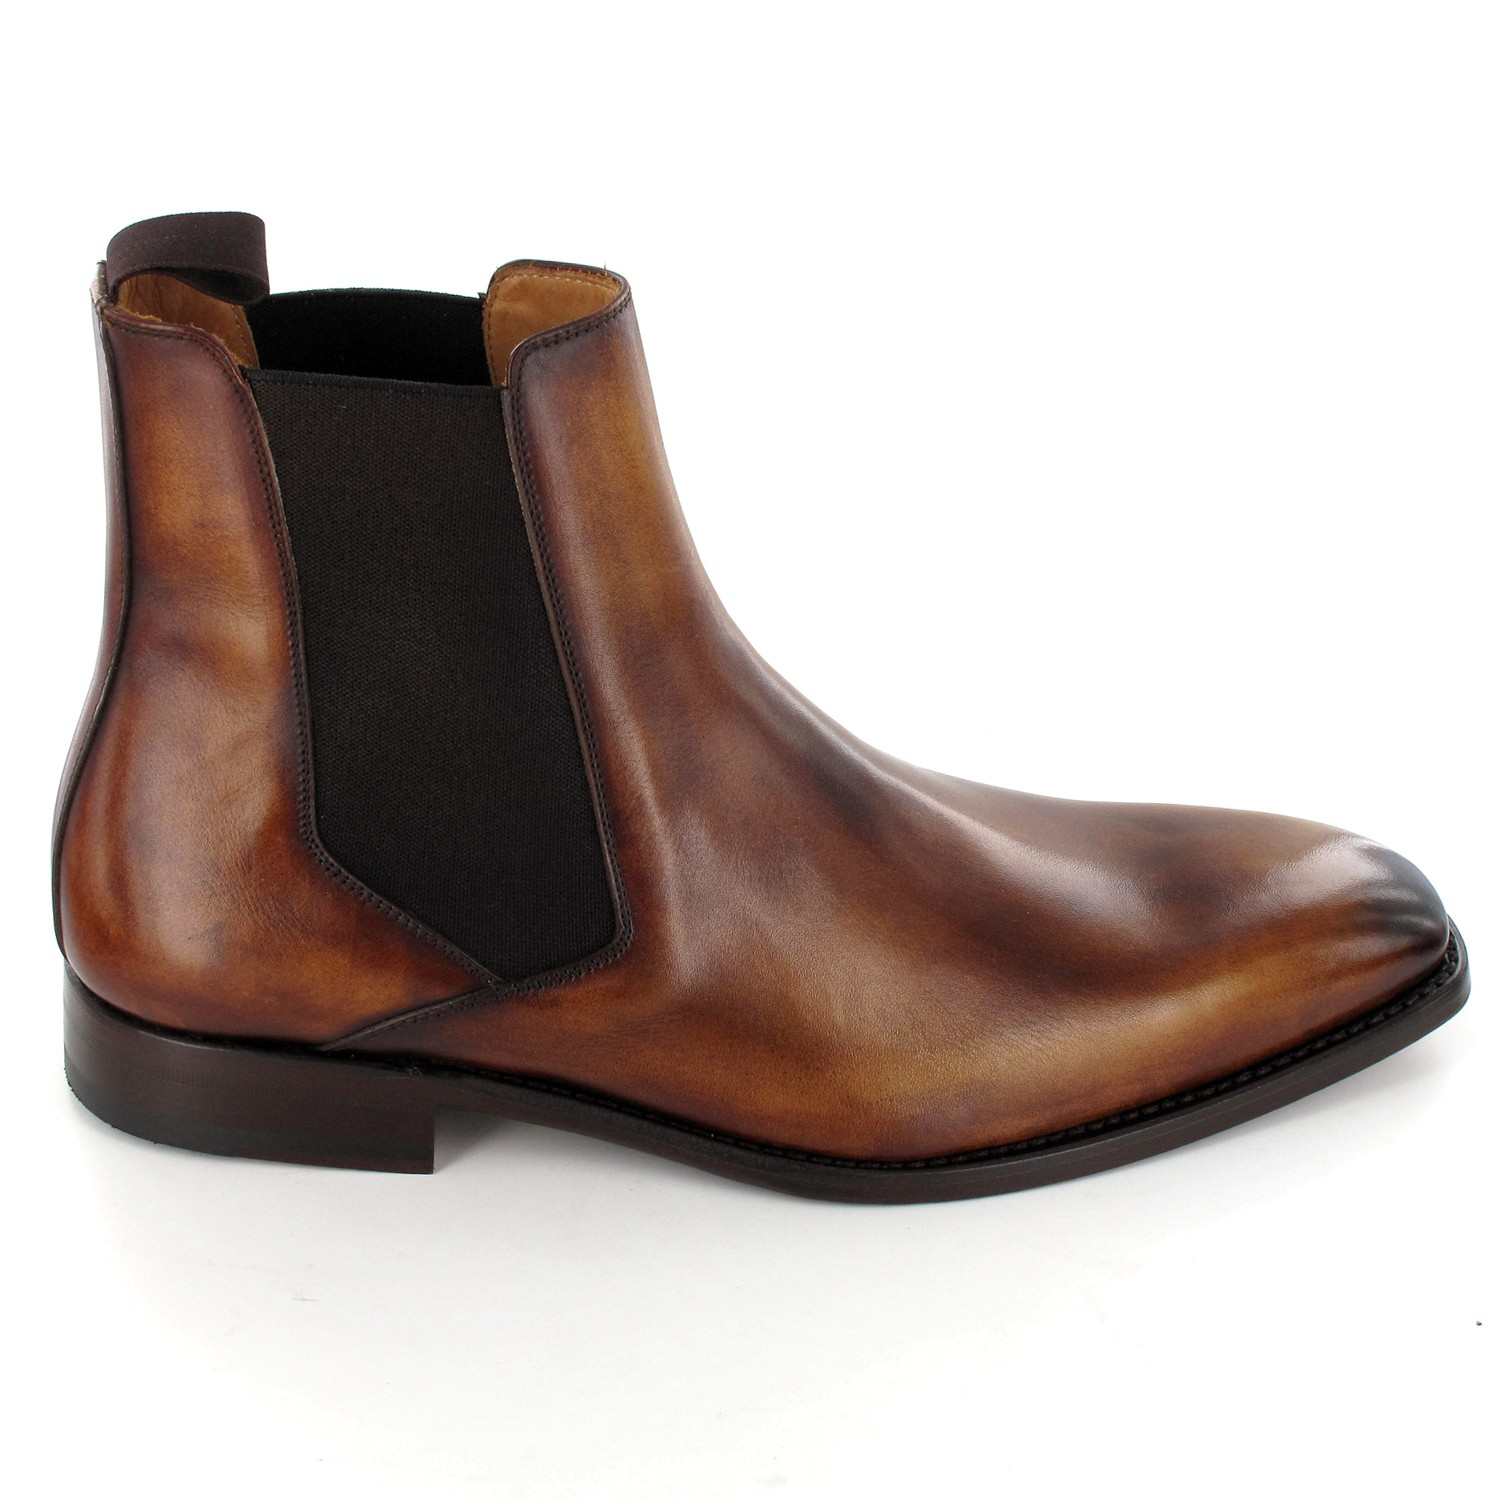 Luxe Patiné De Bottines Pour Marron Homme lK1cFTJ